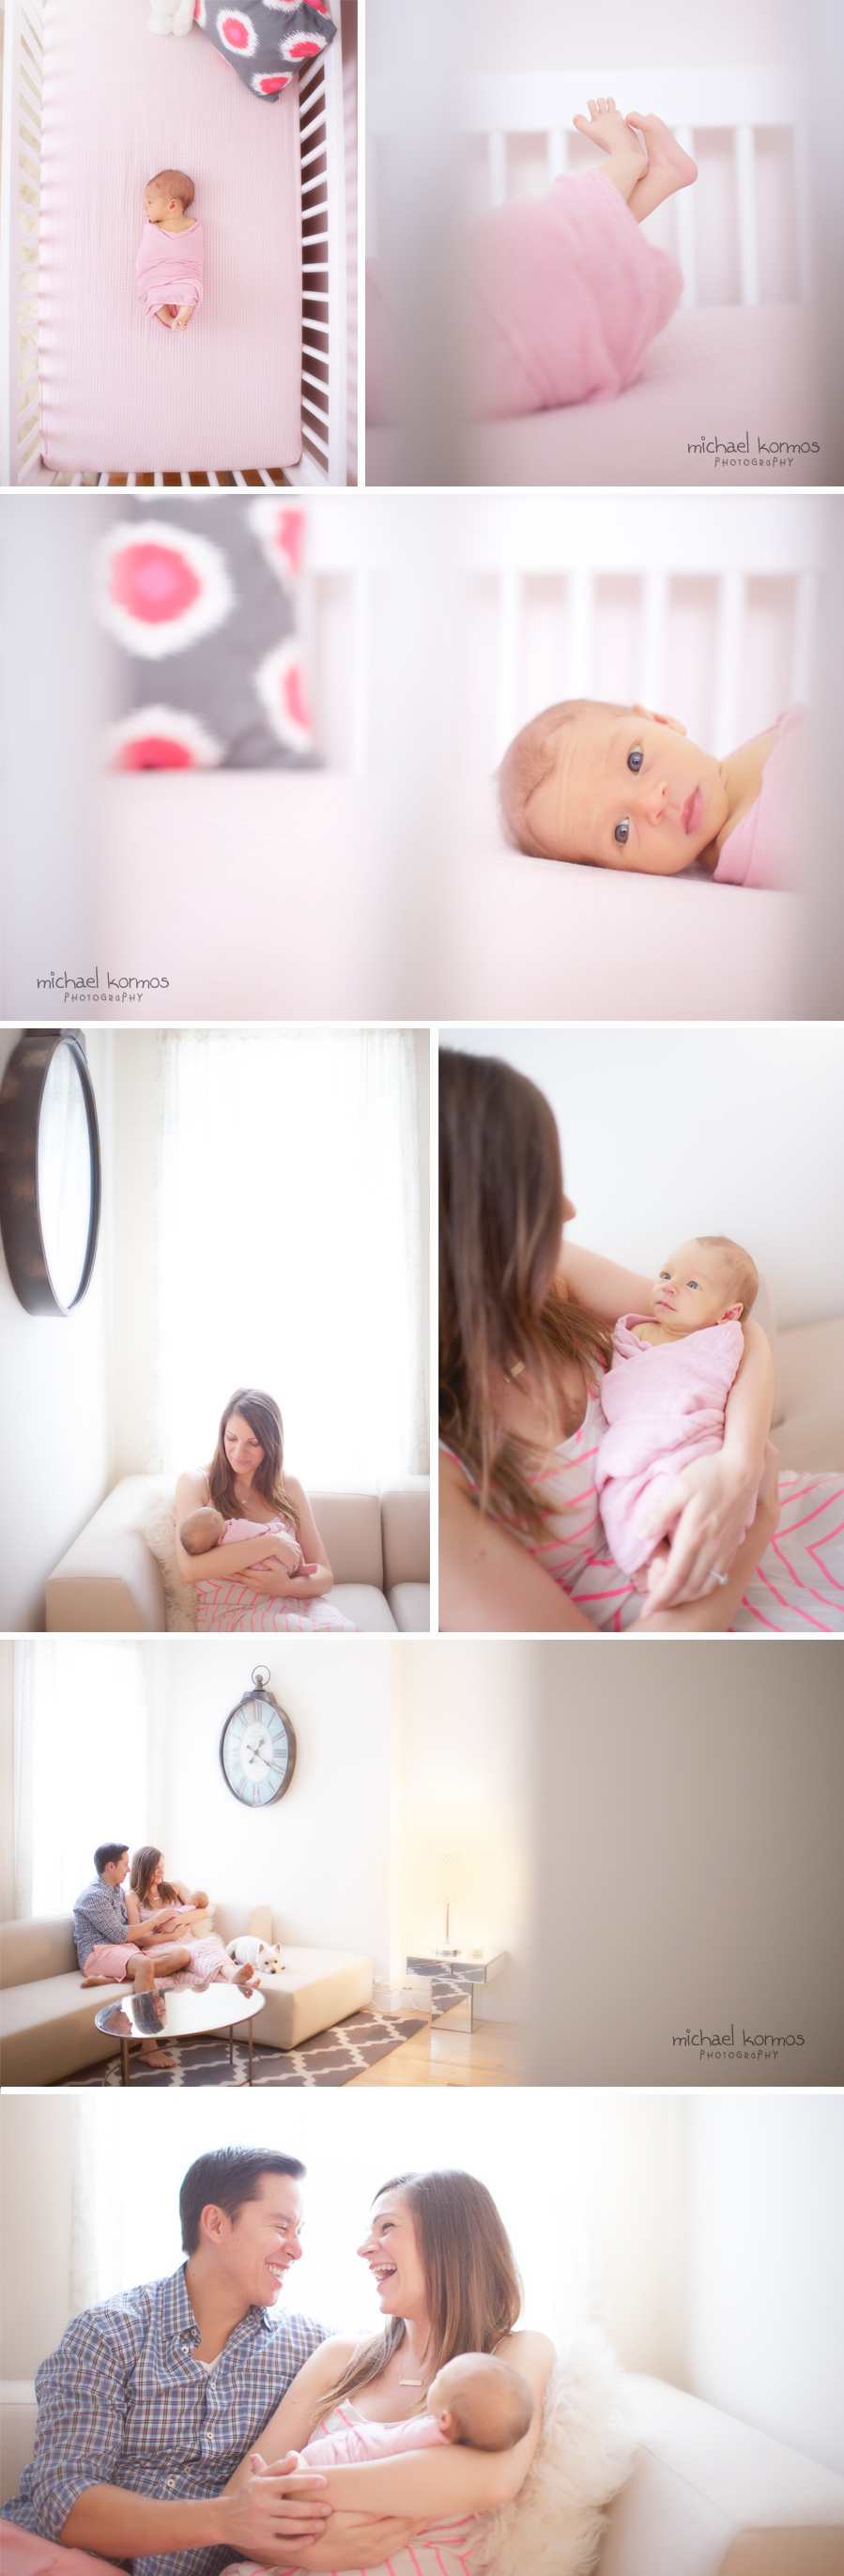 newborn captured artistically in her crib and nursery